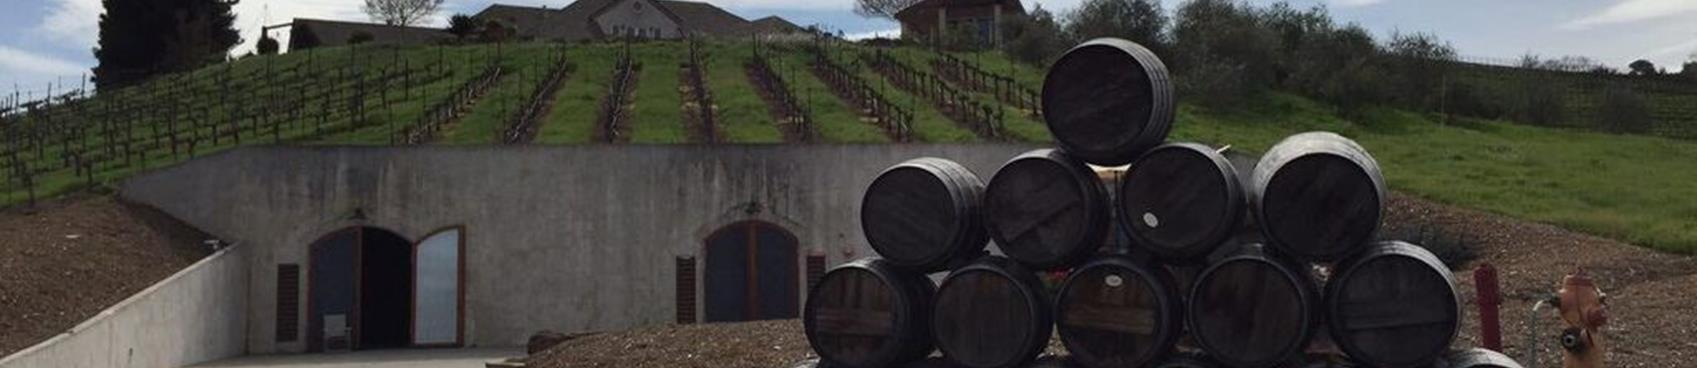 Forthright Winery